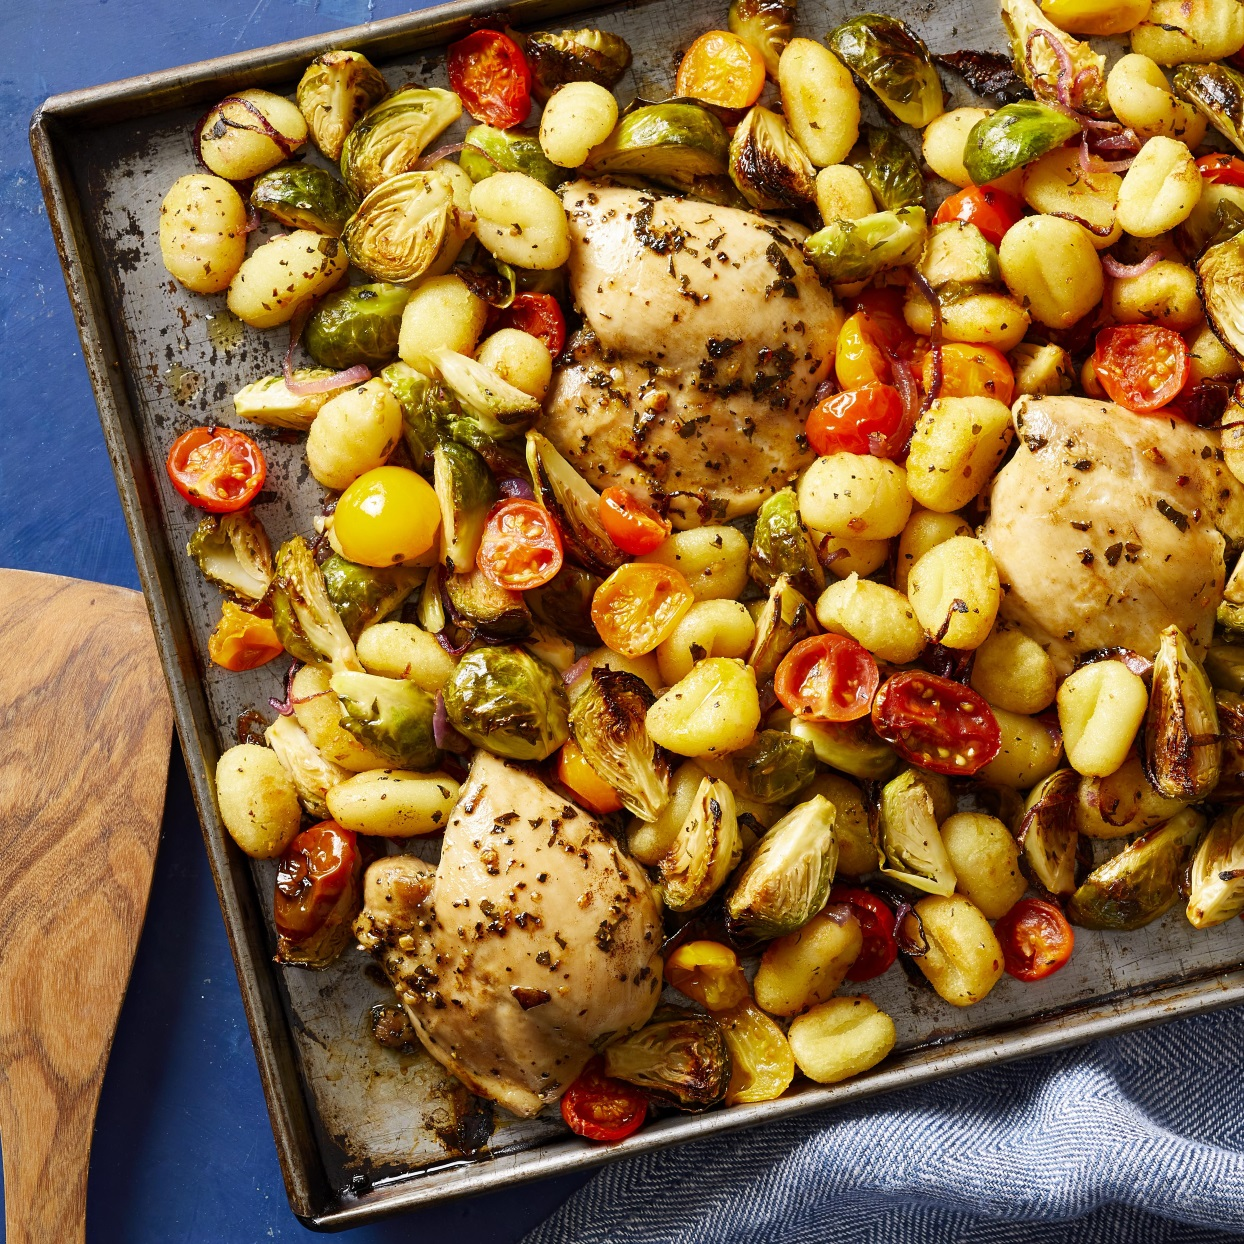 Sheet-Pan Mediterranean Chicken, Brussels Sprouts & Gnocchi Trusted Brands